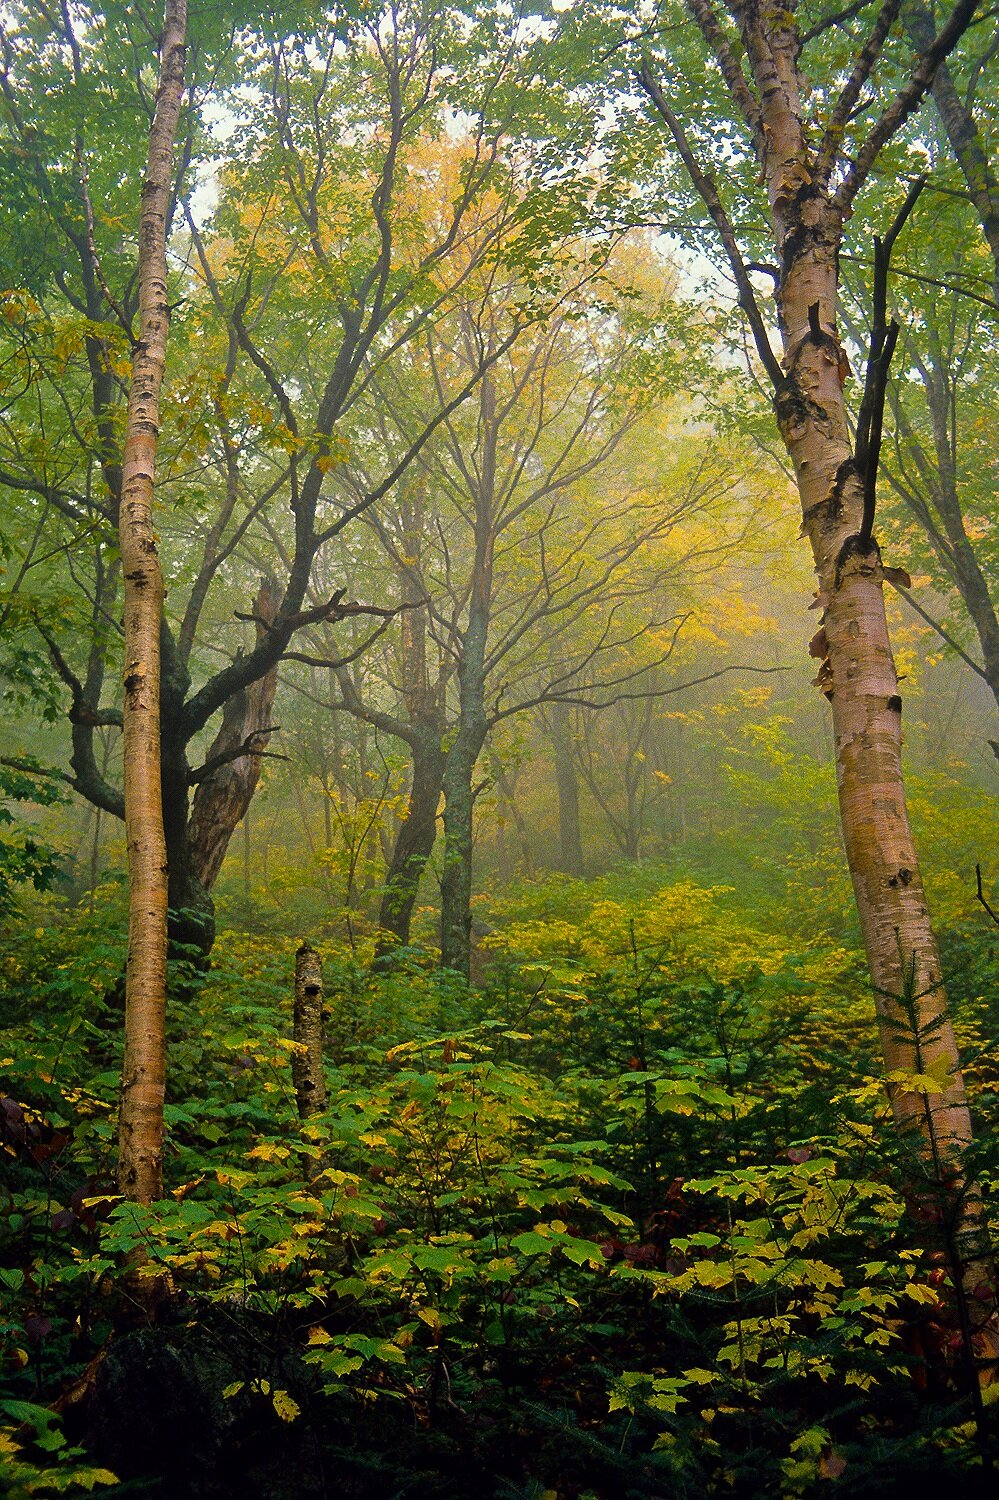 Misty Mountain - White Mountain National Forest, New Hampshire